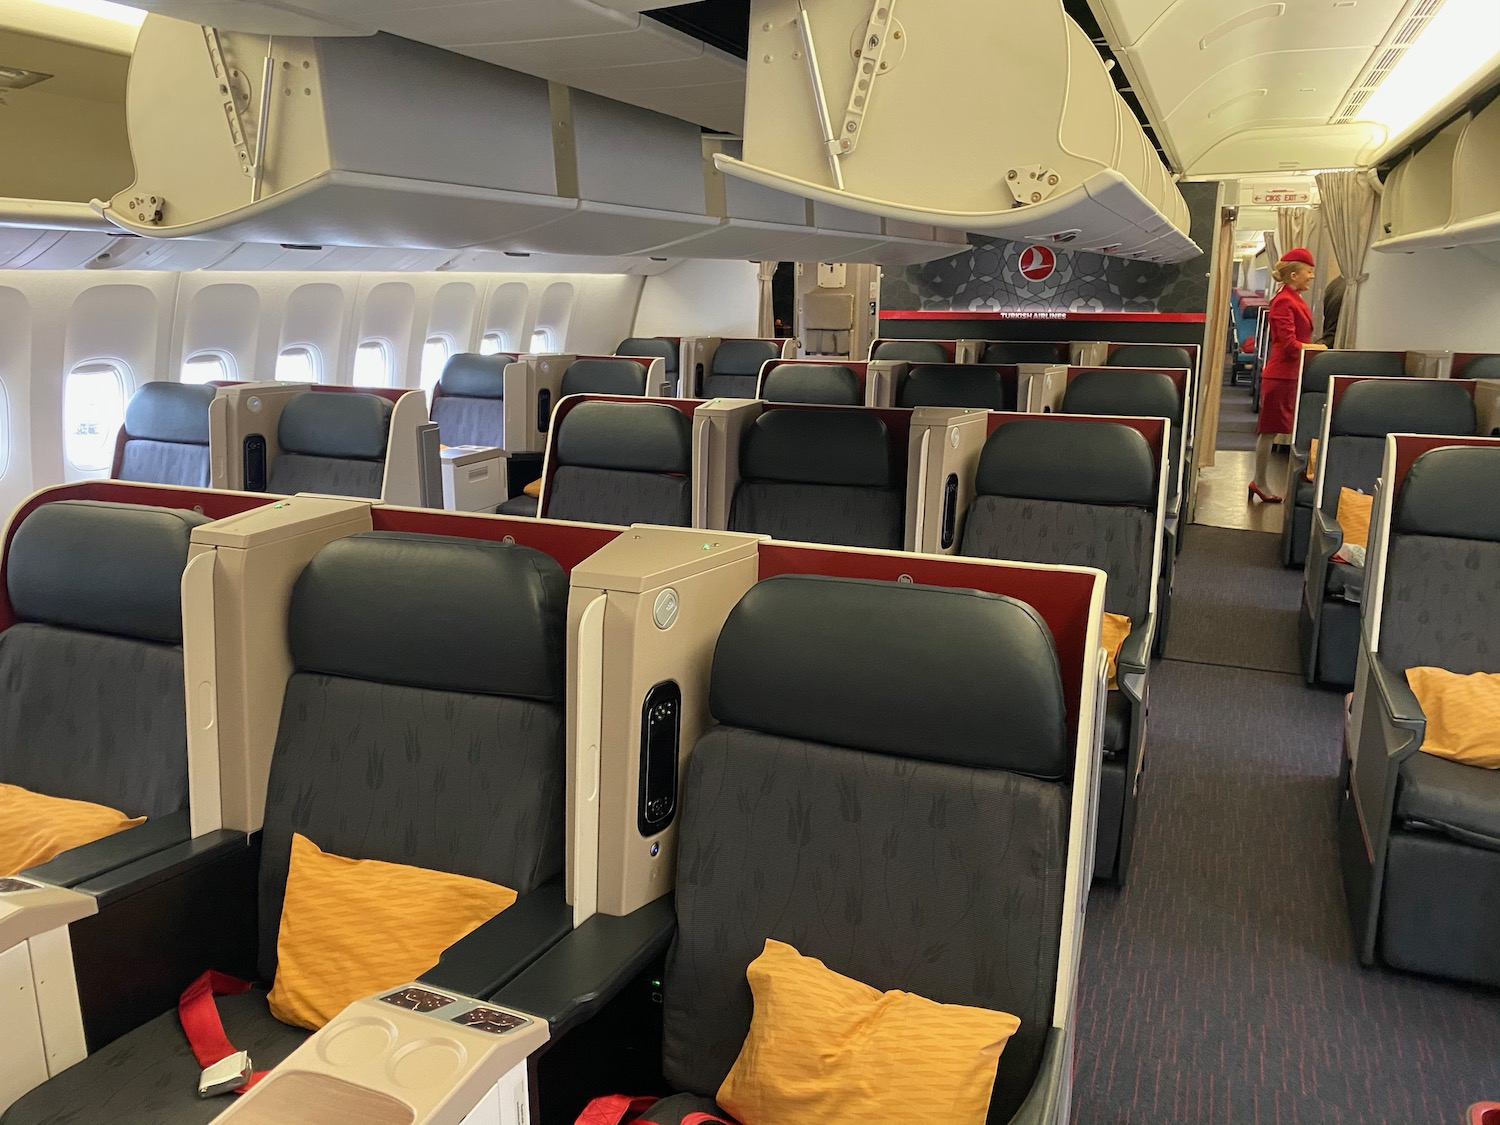 Review: Turkish Airlines 777-300 Business Class - Live and Let's Fly